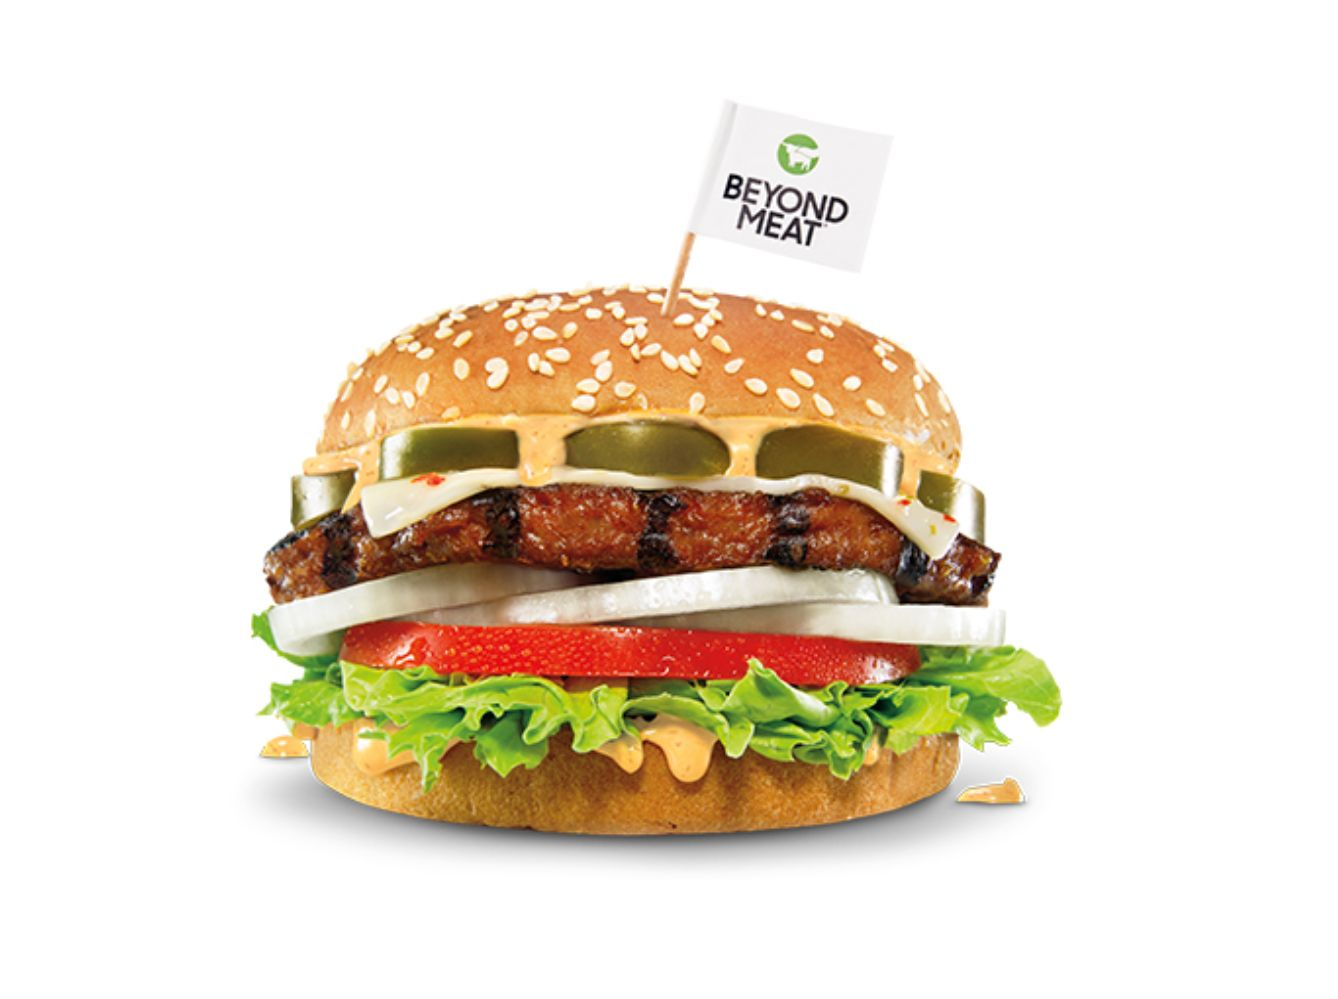 Spicy New Beyond Fiery Famous Star Burger is Now Being Dished Up at Carl's Jr.